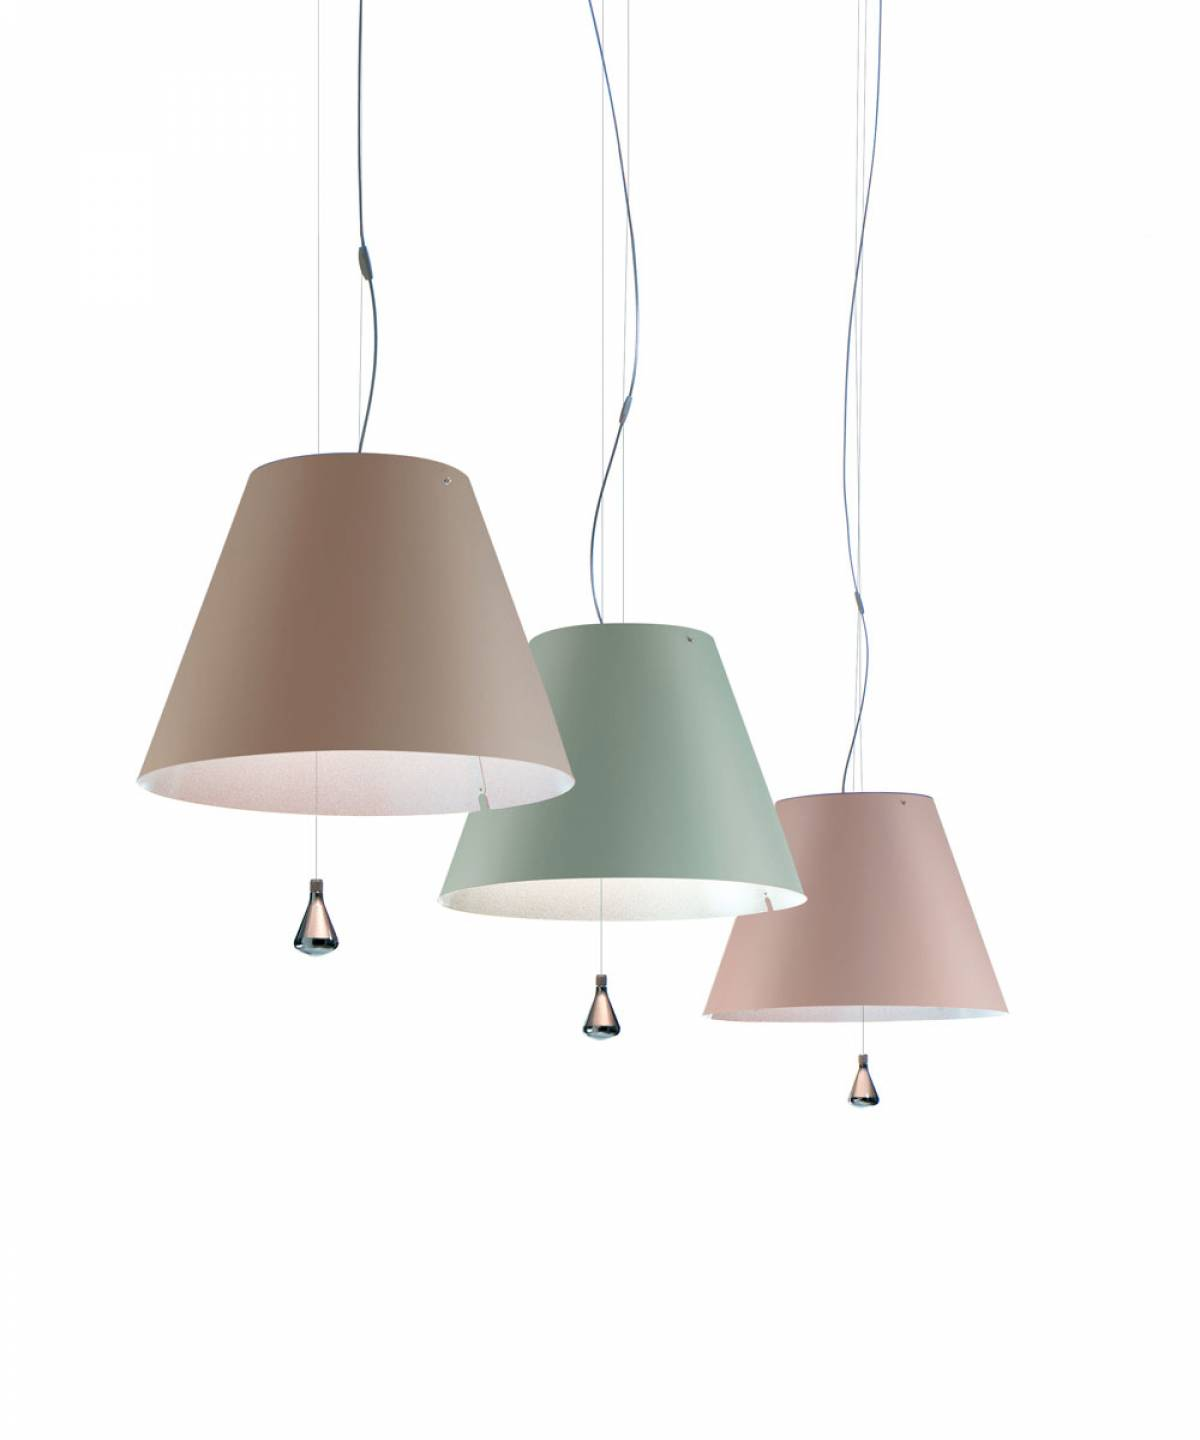 1 Costanza suspension lamp Luceplan